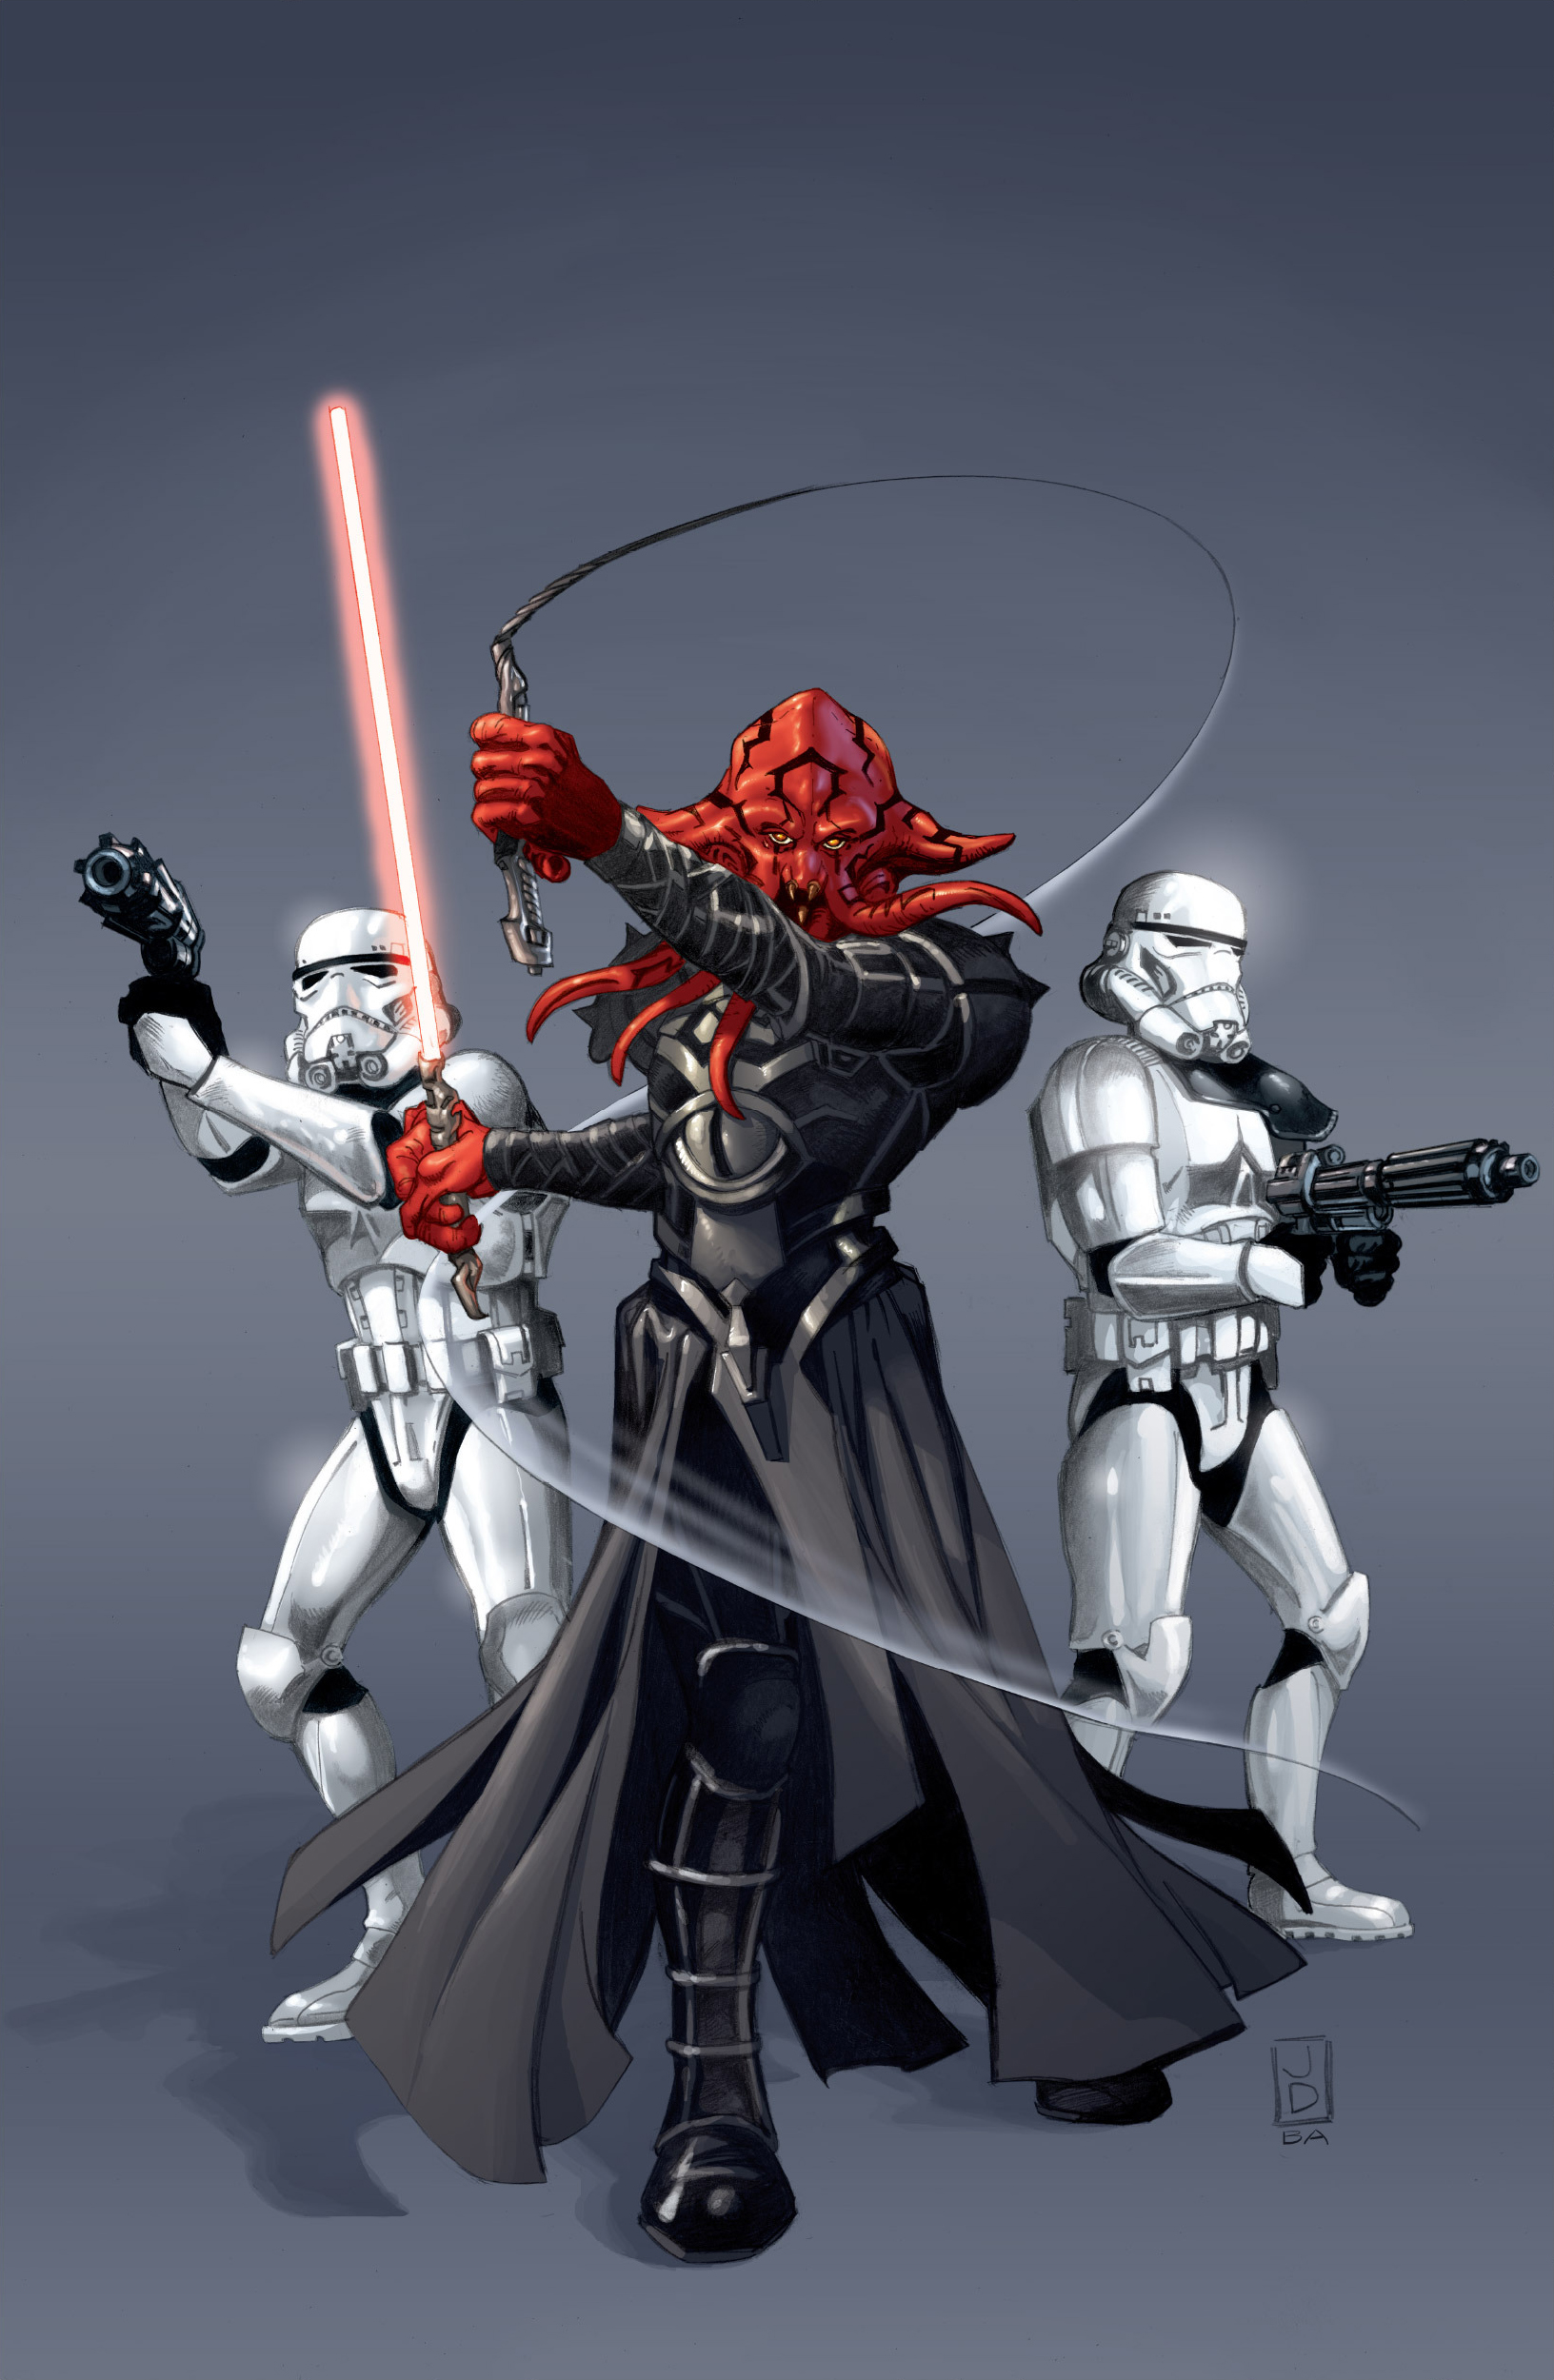 501st Stormtrooper Legion Sides With Emperor Fel Against The Sith